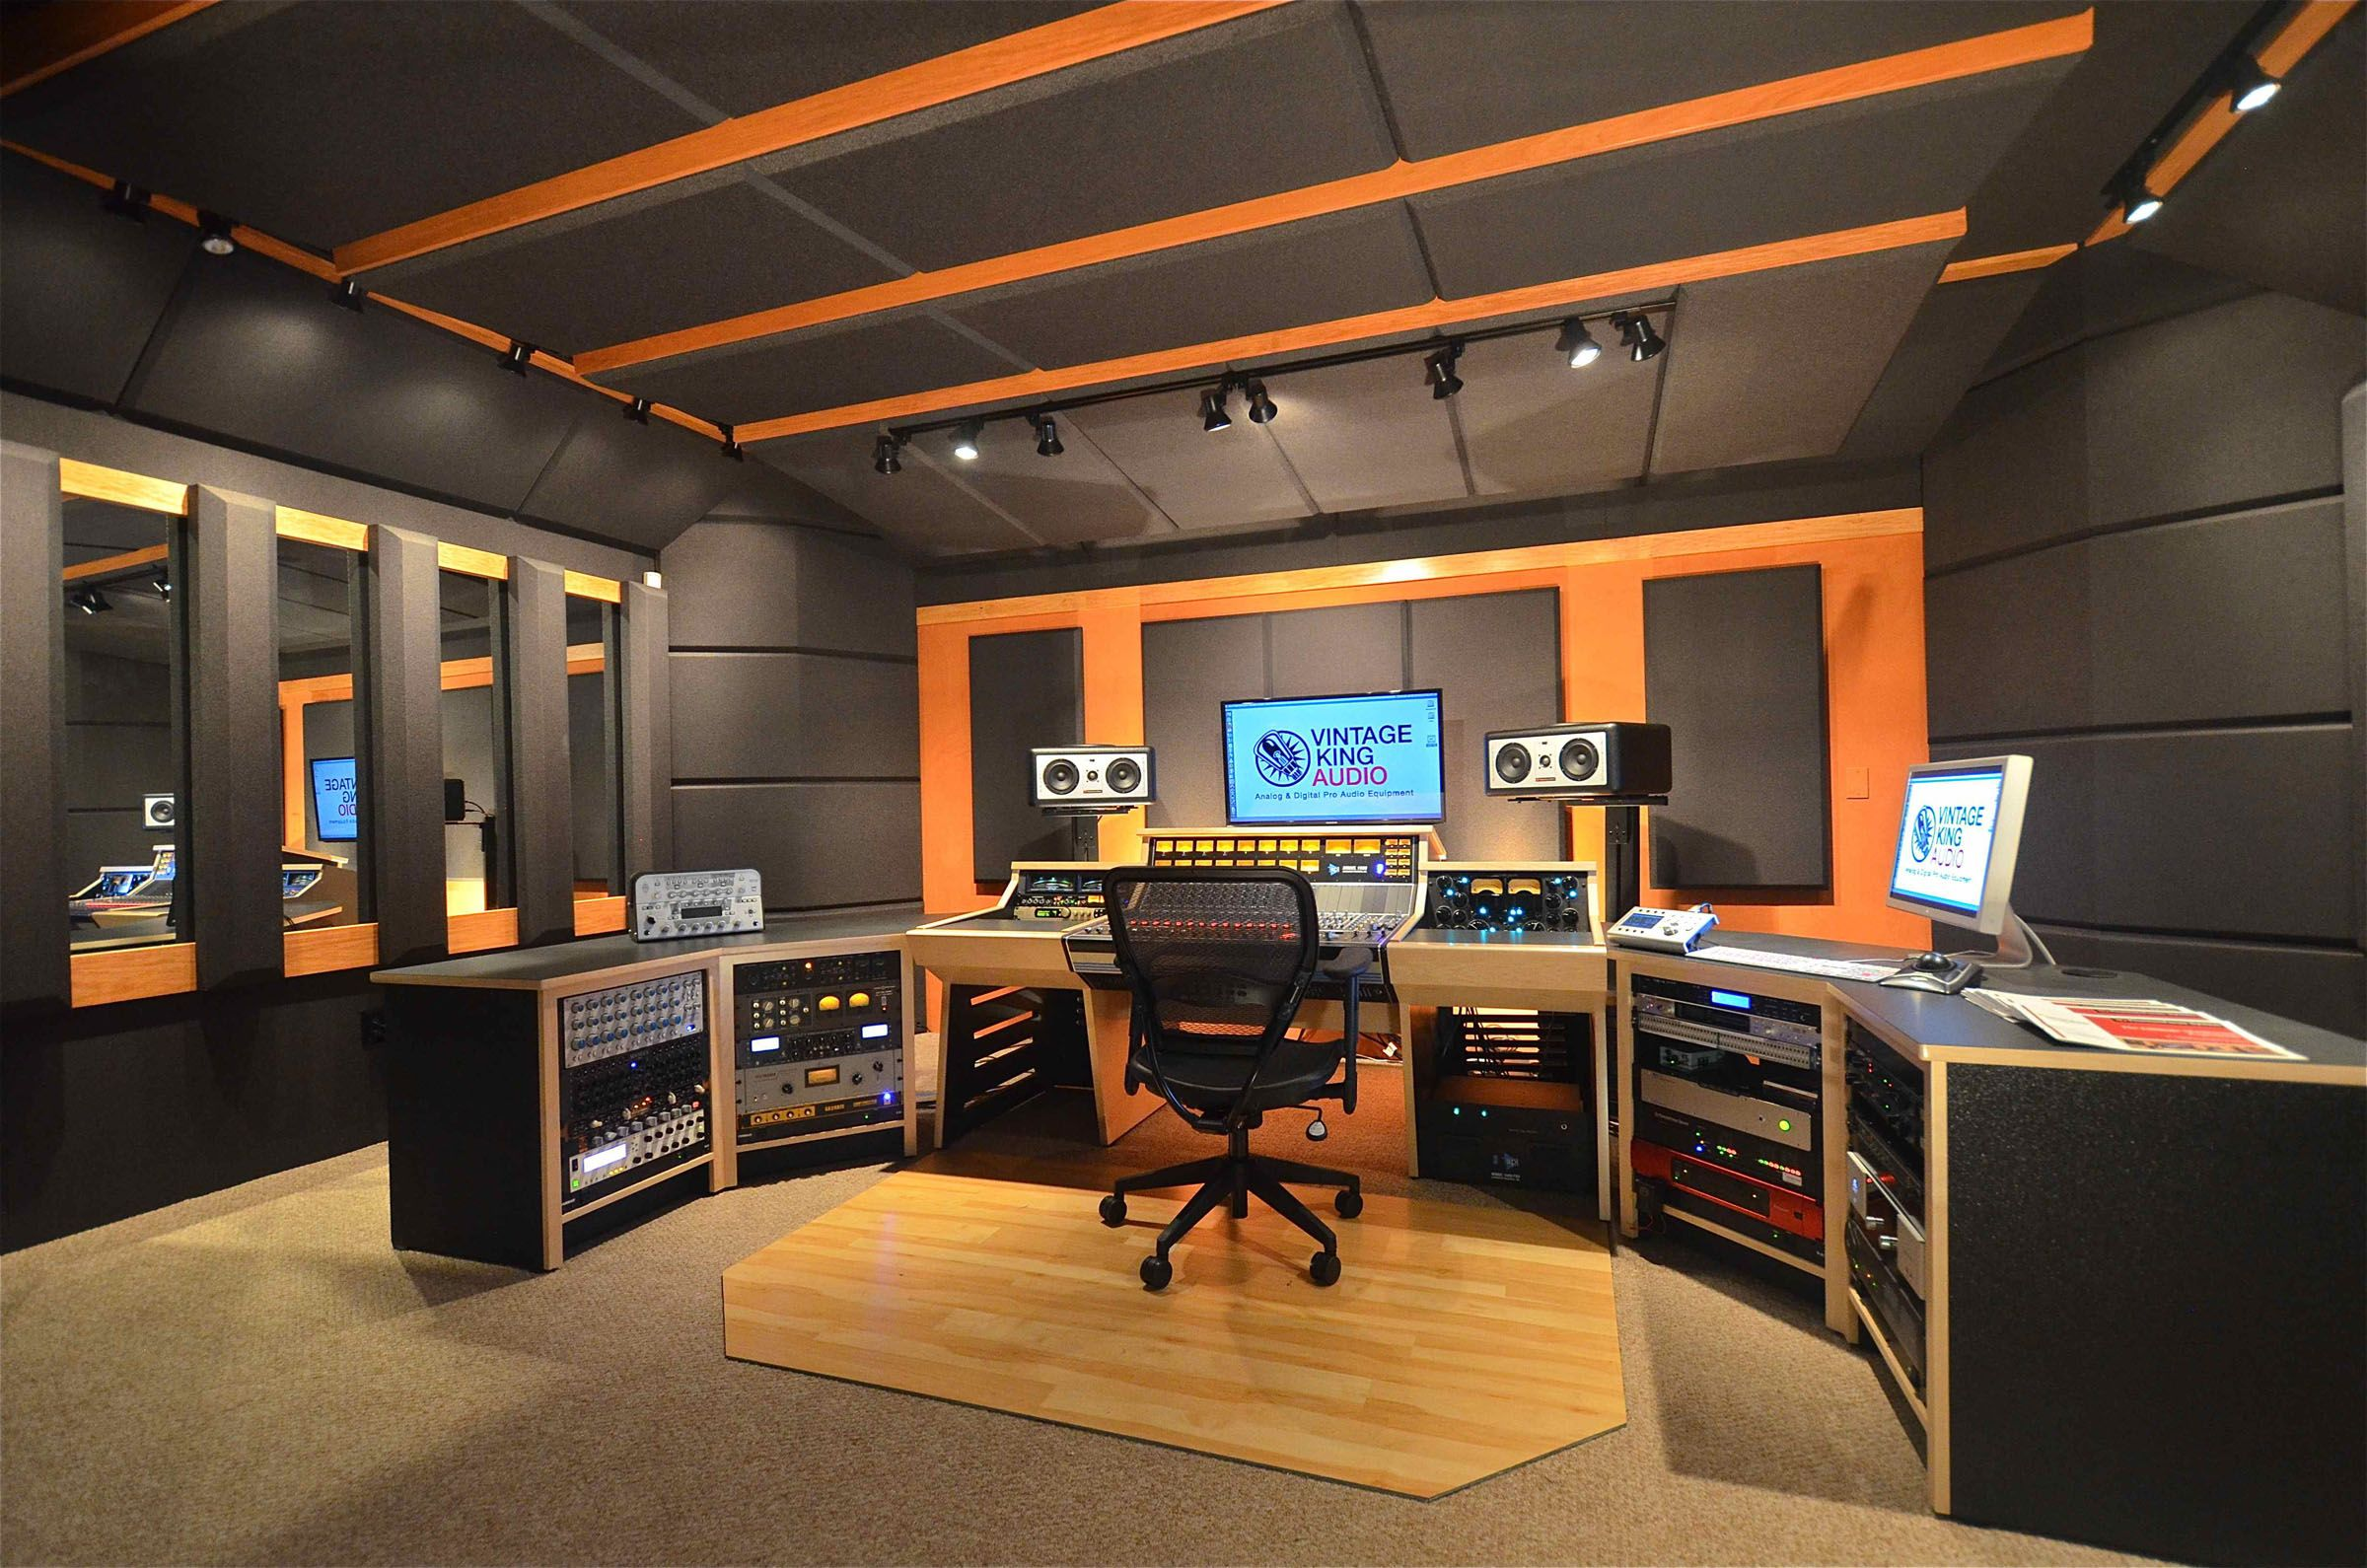 designing a sound recording studio google search recording studio design pinterest. Black Bedroom Furniture Sets. Home Design Ideas